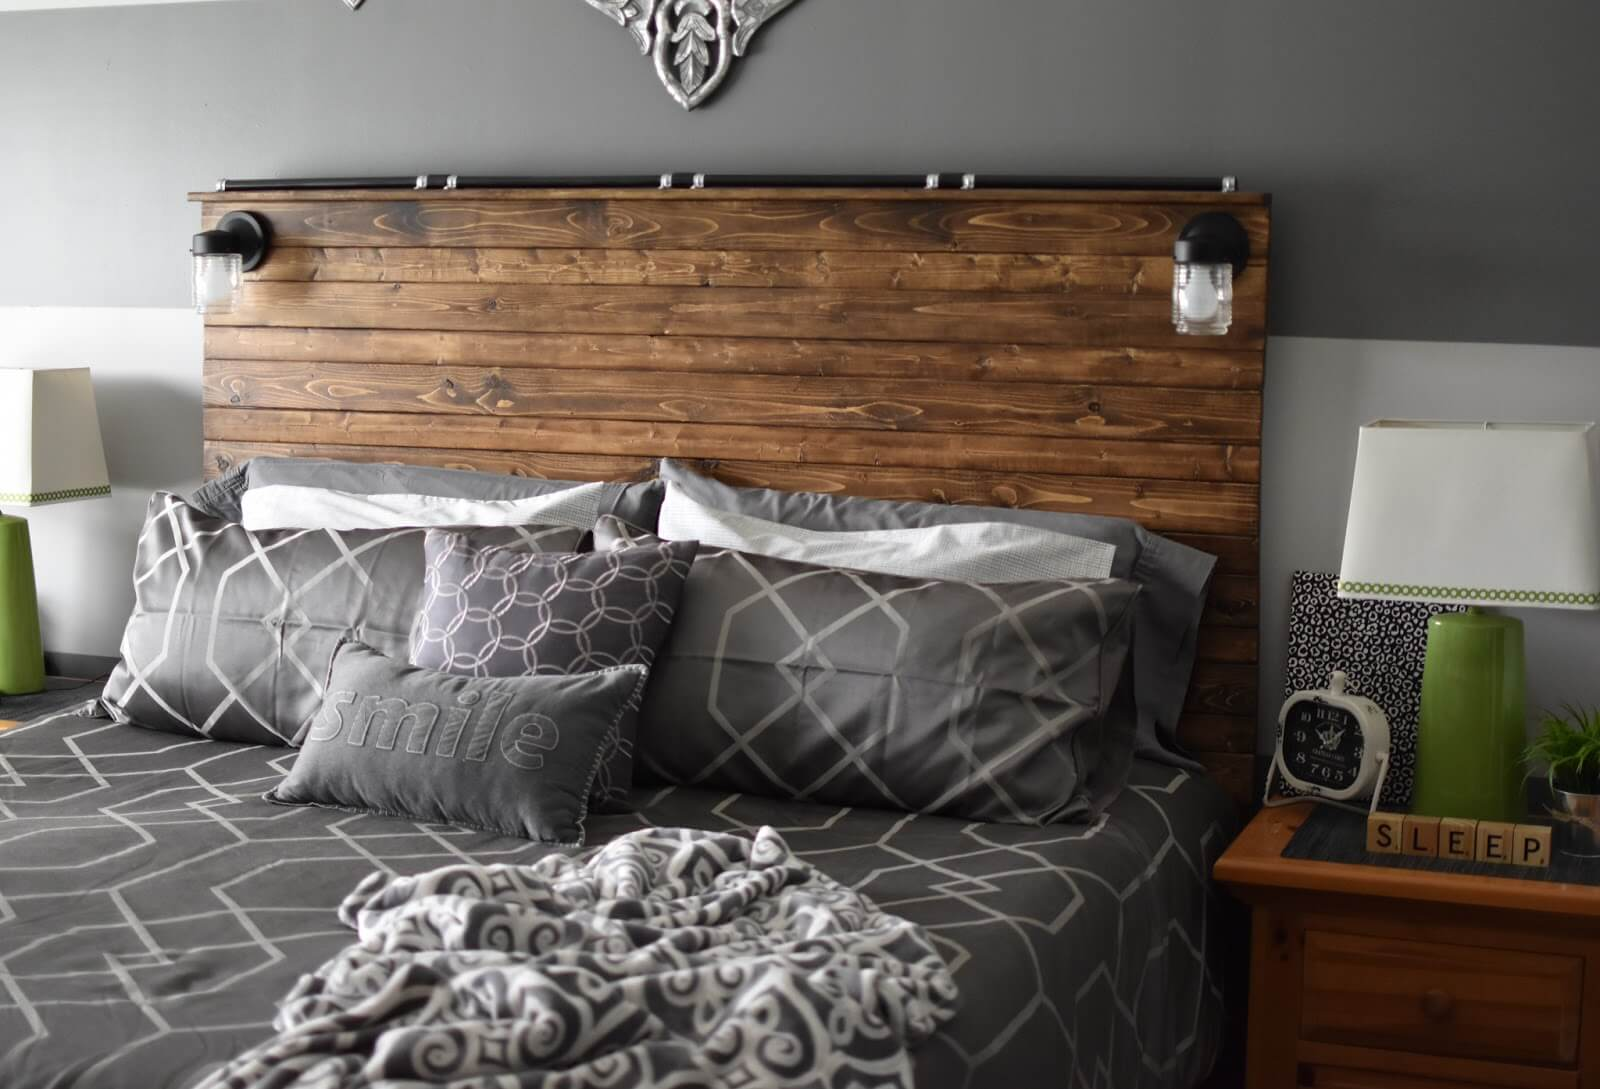 WOOD CUSTOMIZED HEADBOARD DESIGN IDEAS